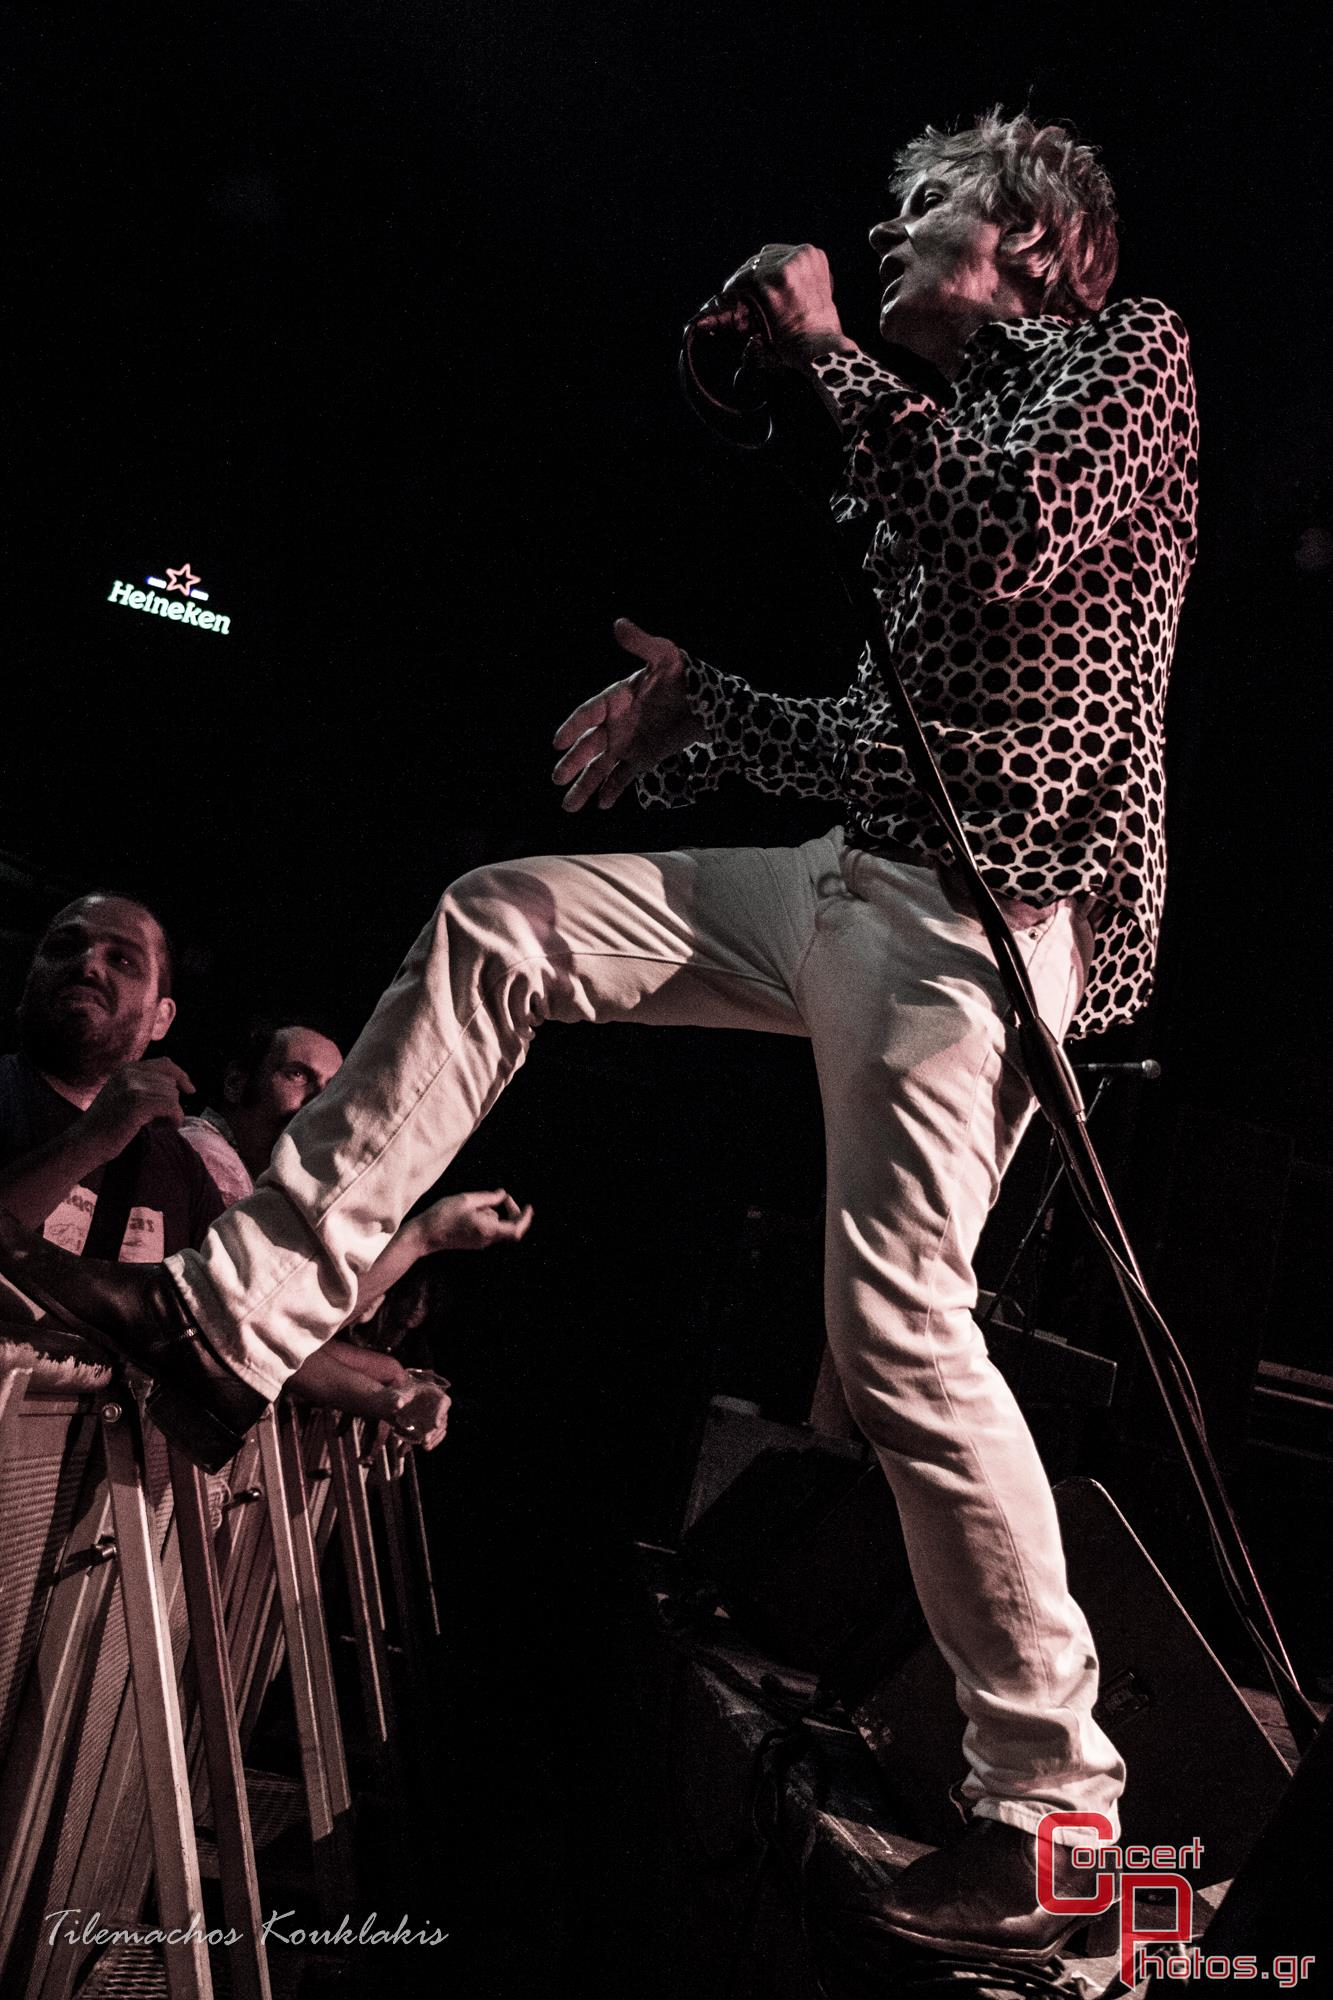 The Fleshtones - Dirty Fuse - The Statycs-The Fleshtones - Dirty Fuse - The Statycs photographer:  - IMG_8391